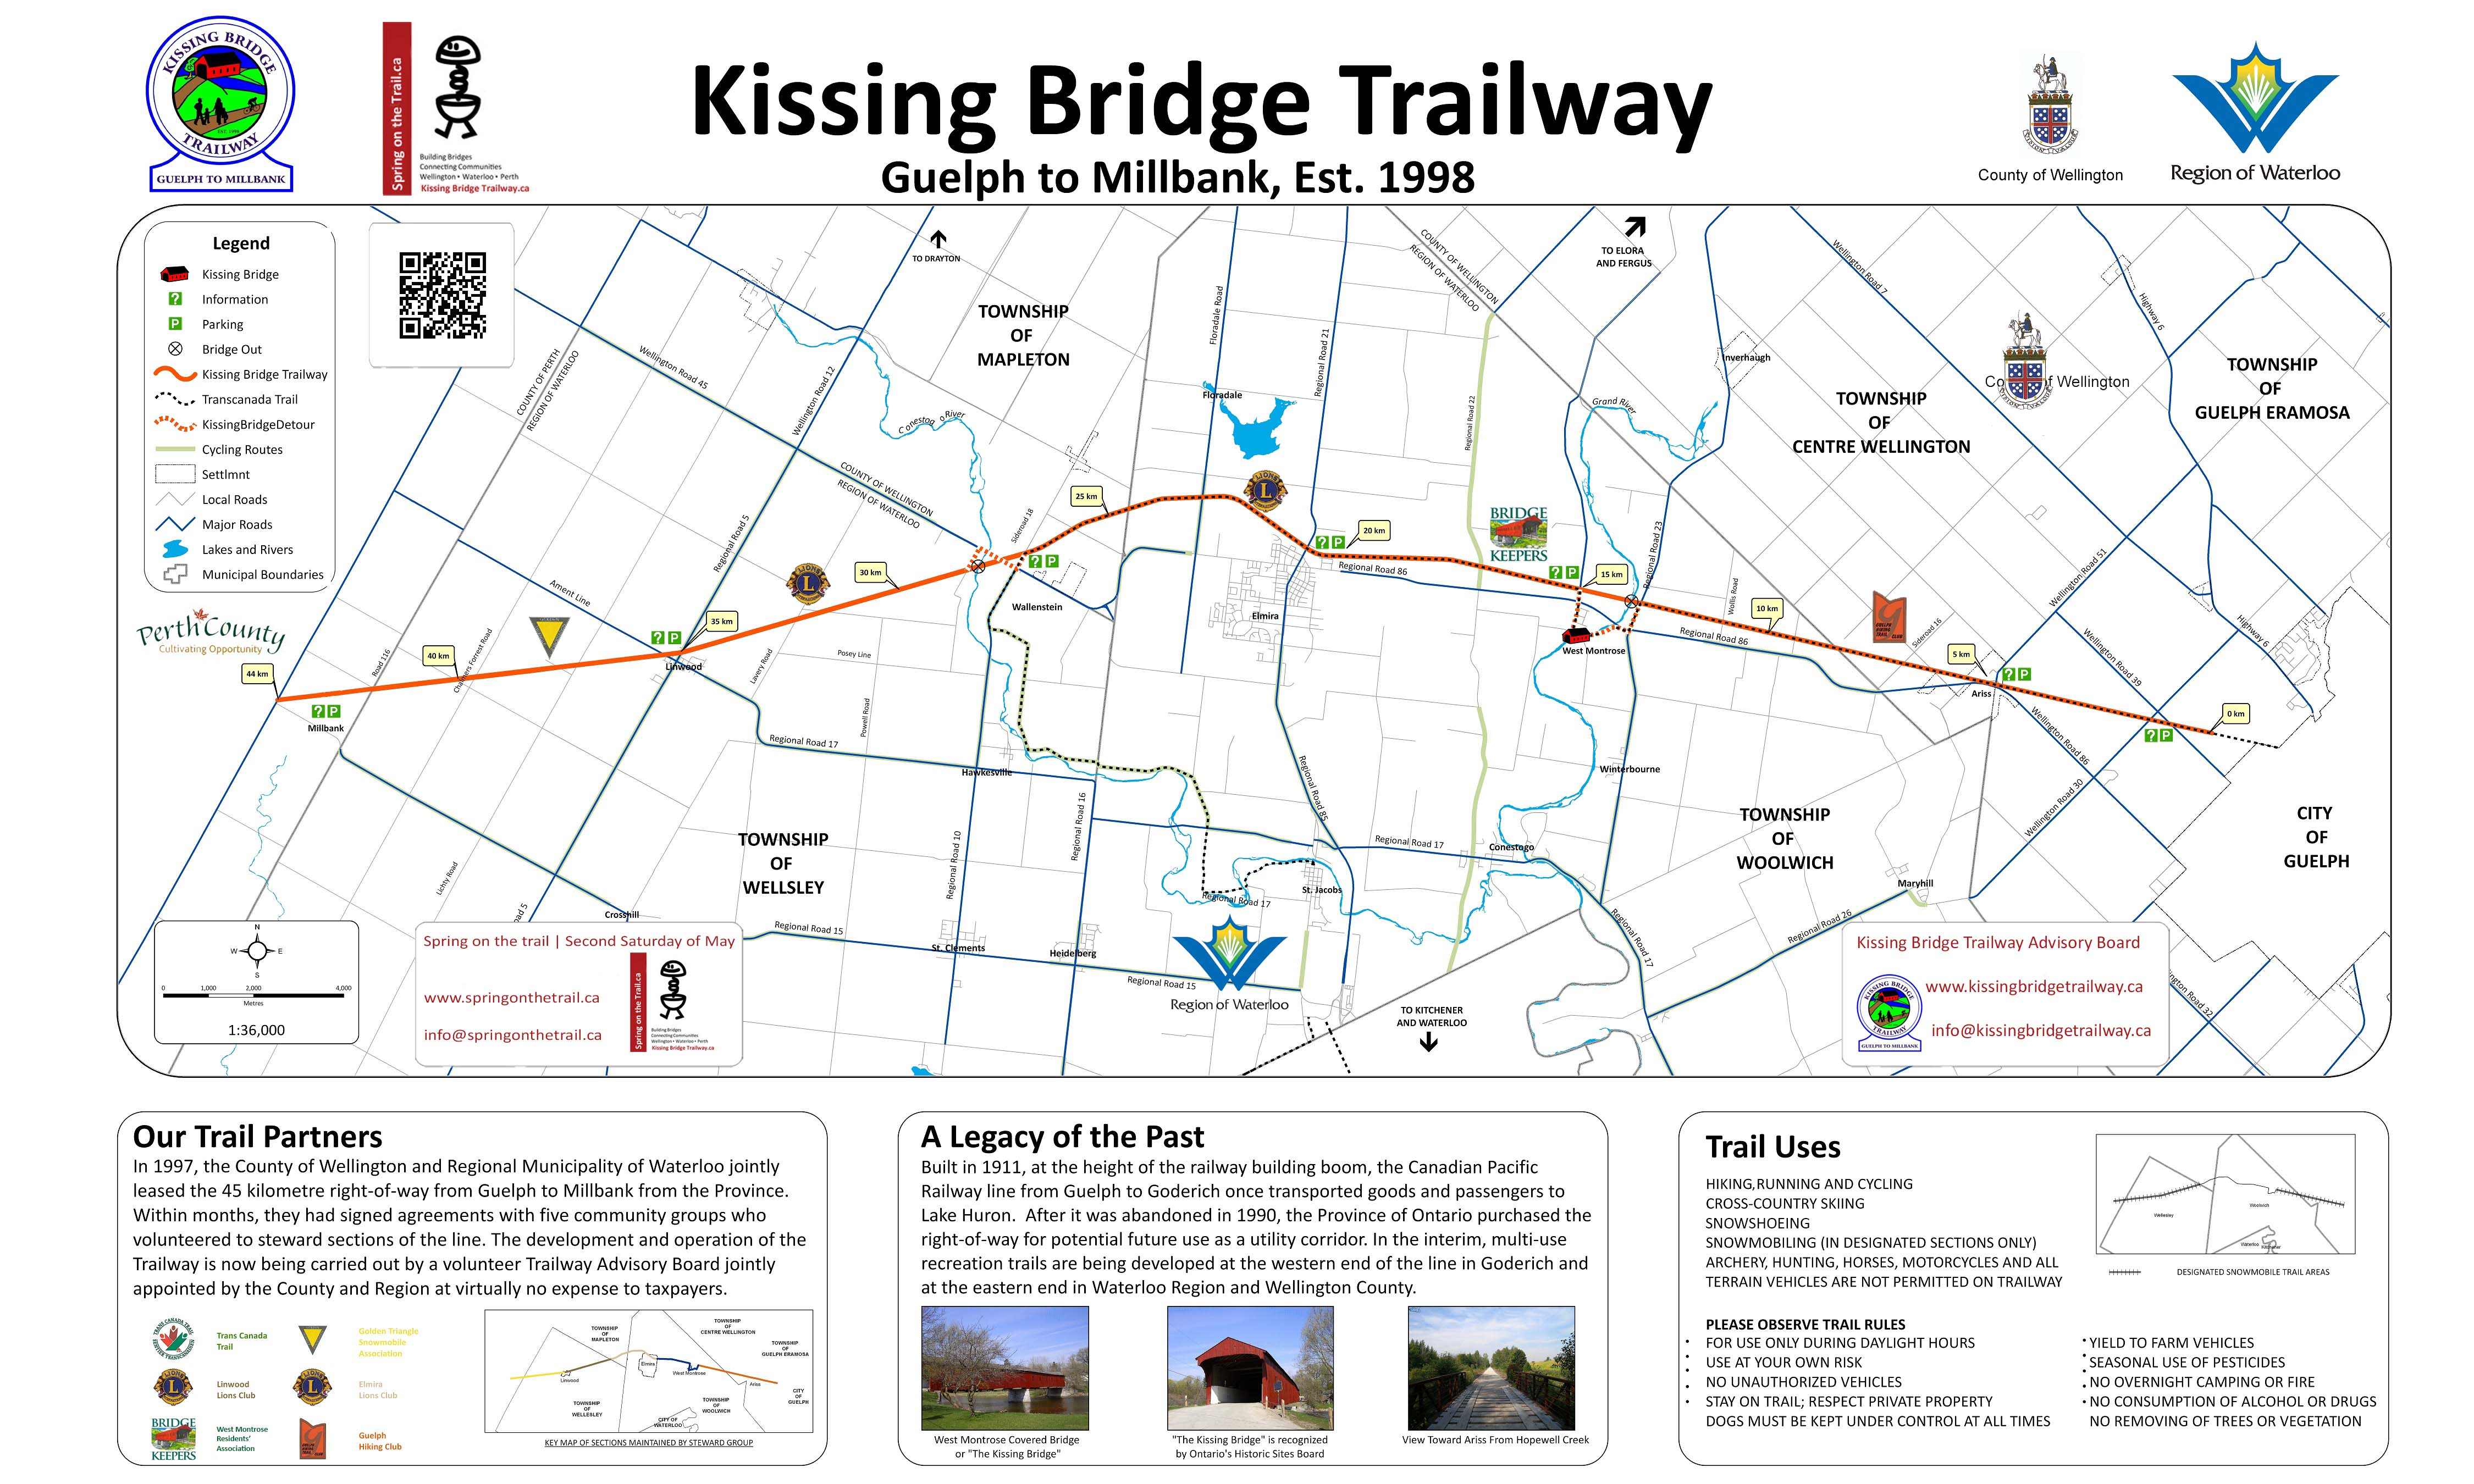 Kissing Bridge Trailway Locations and Maps